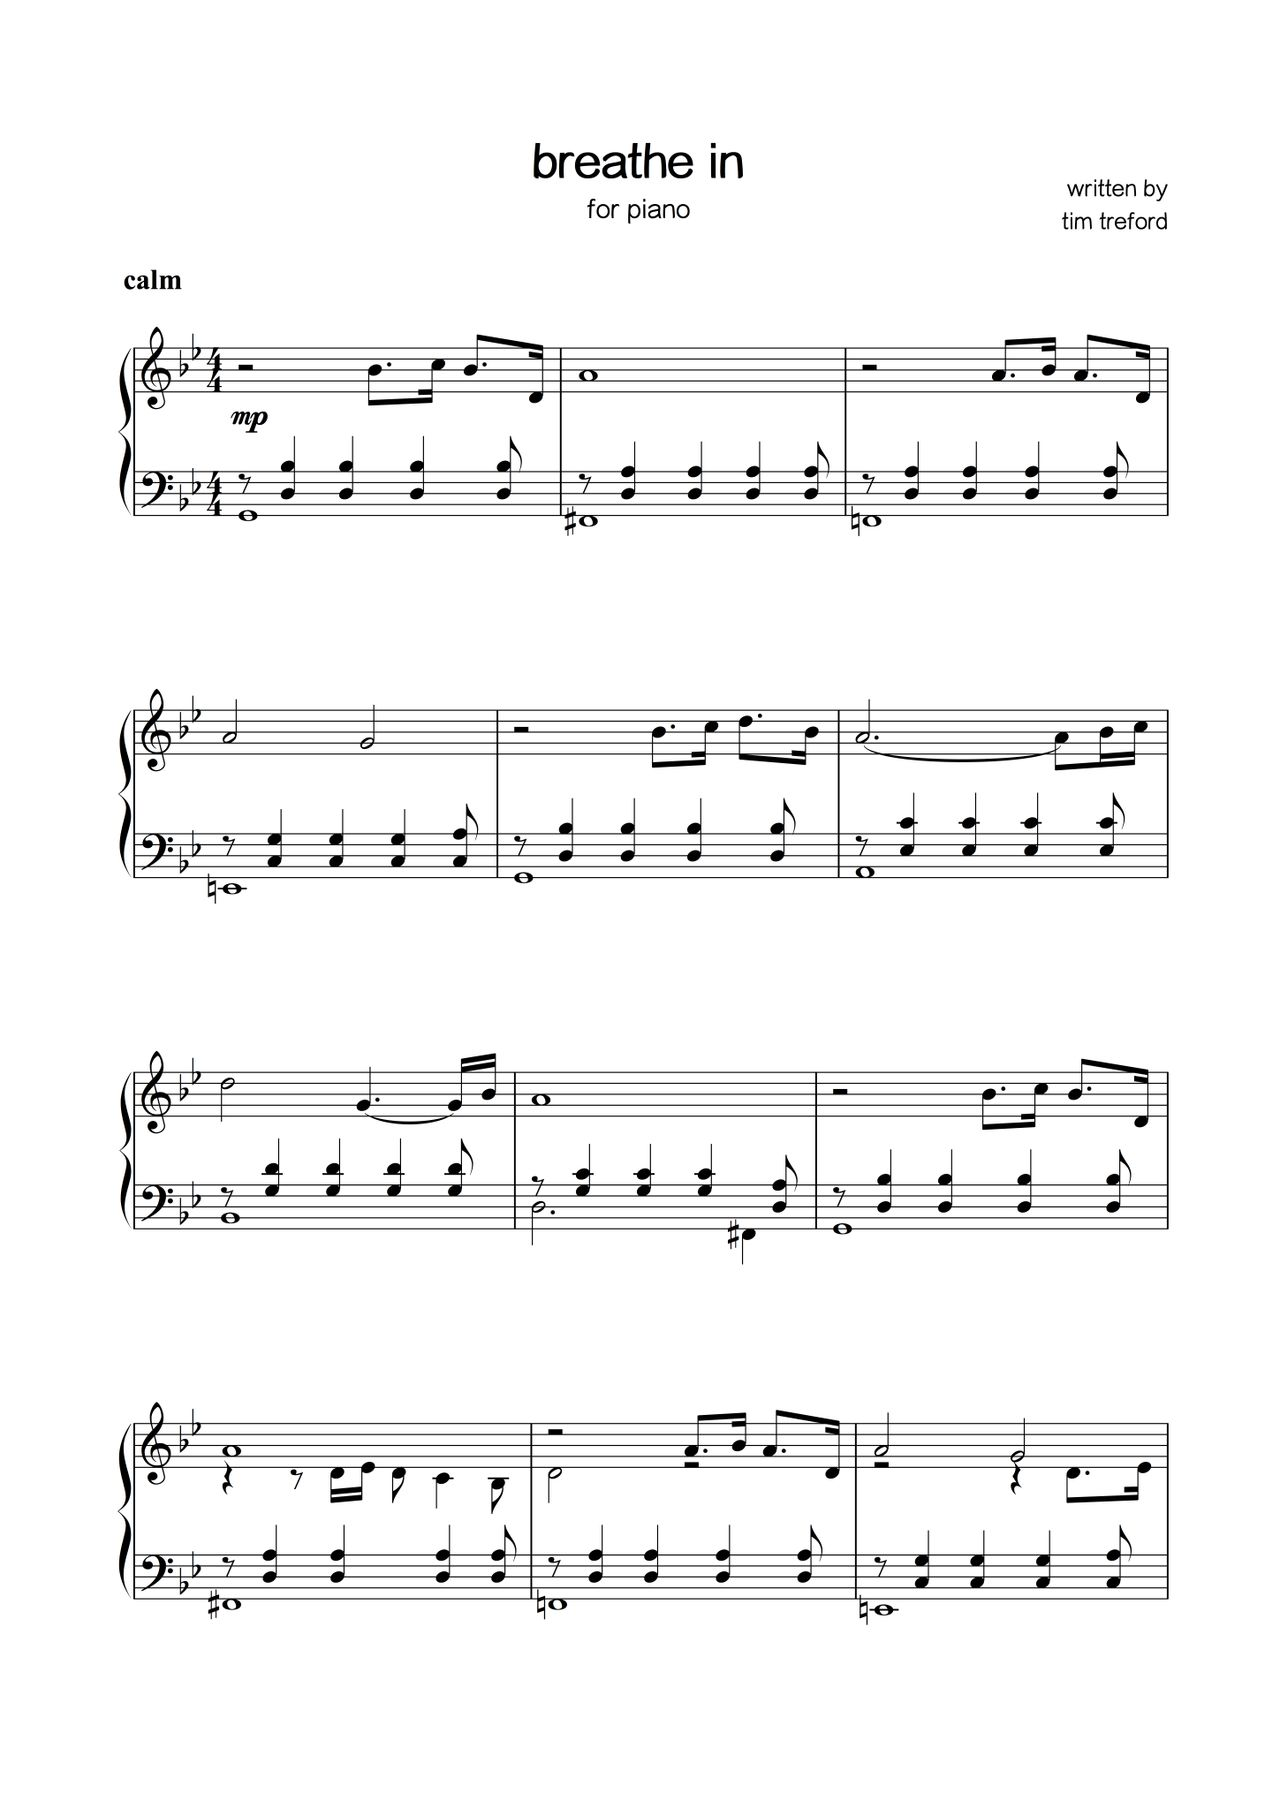 sheet music - tim treford - breathe in